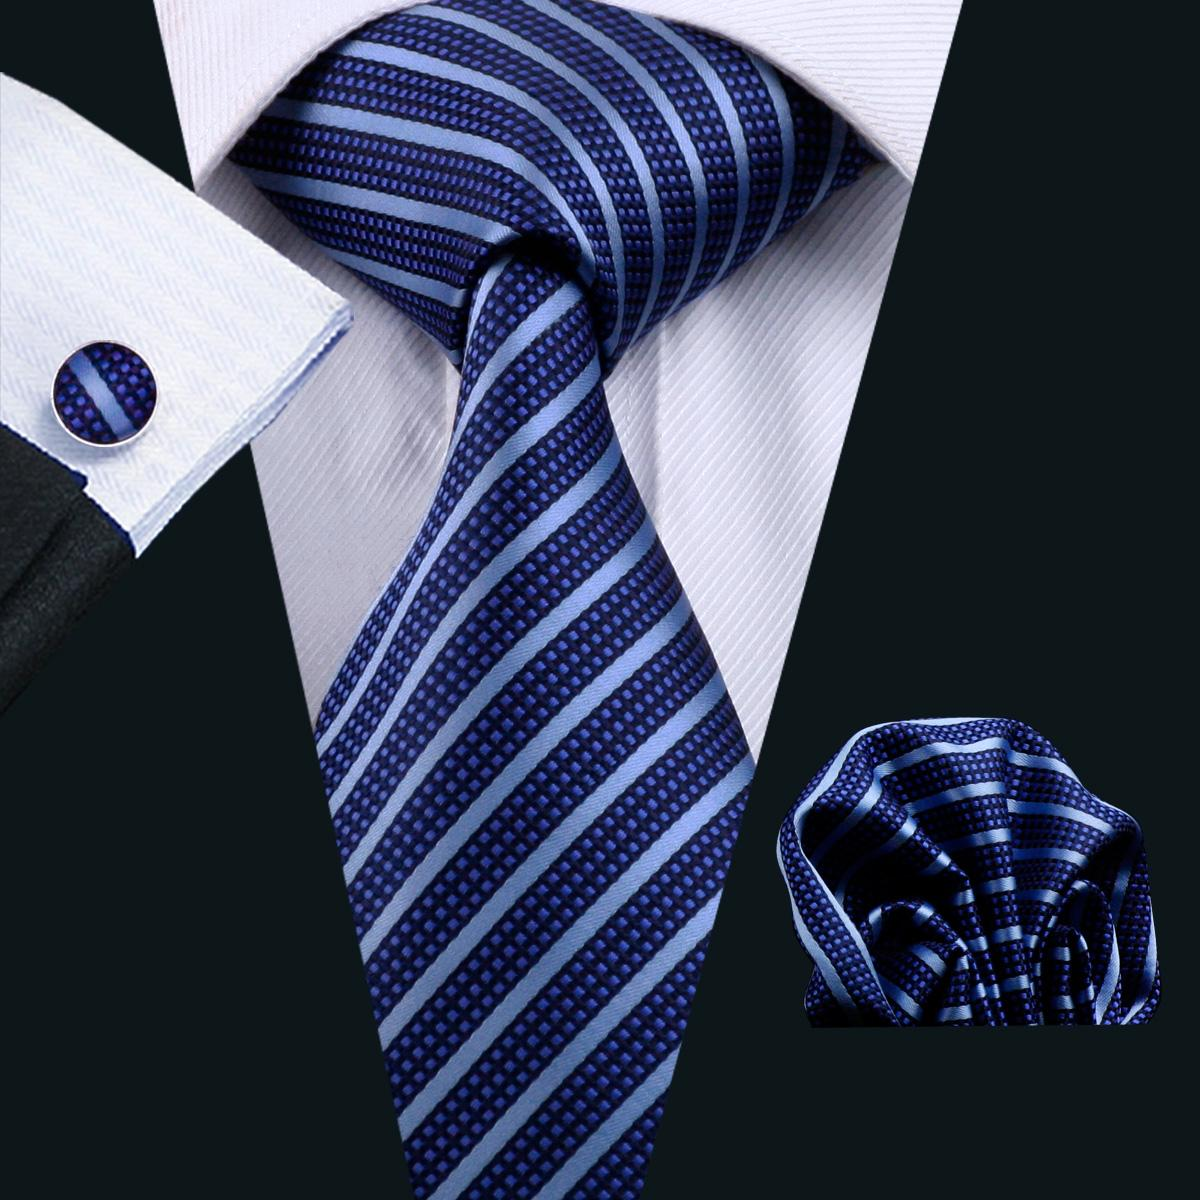 Blue Stripe Neck Tie Set Mens Silk Tie Hanky Cufflinks Jacquard Woven Formal Work Meeting Leisure N-0337